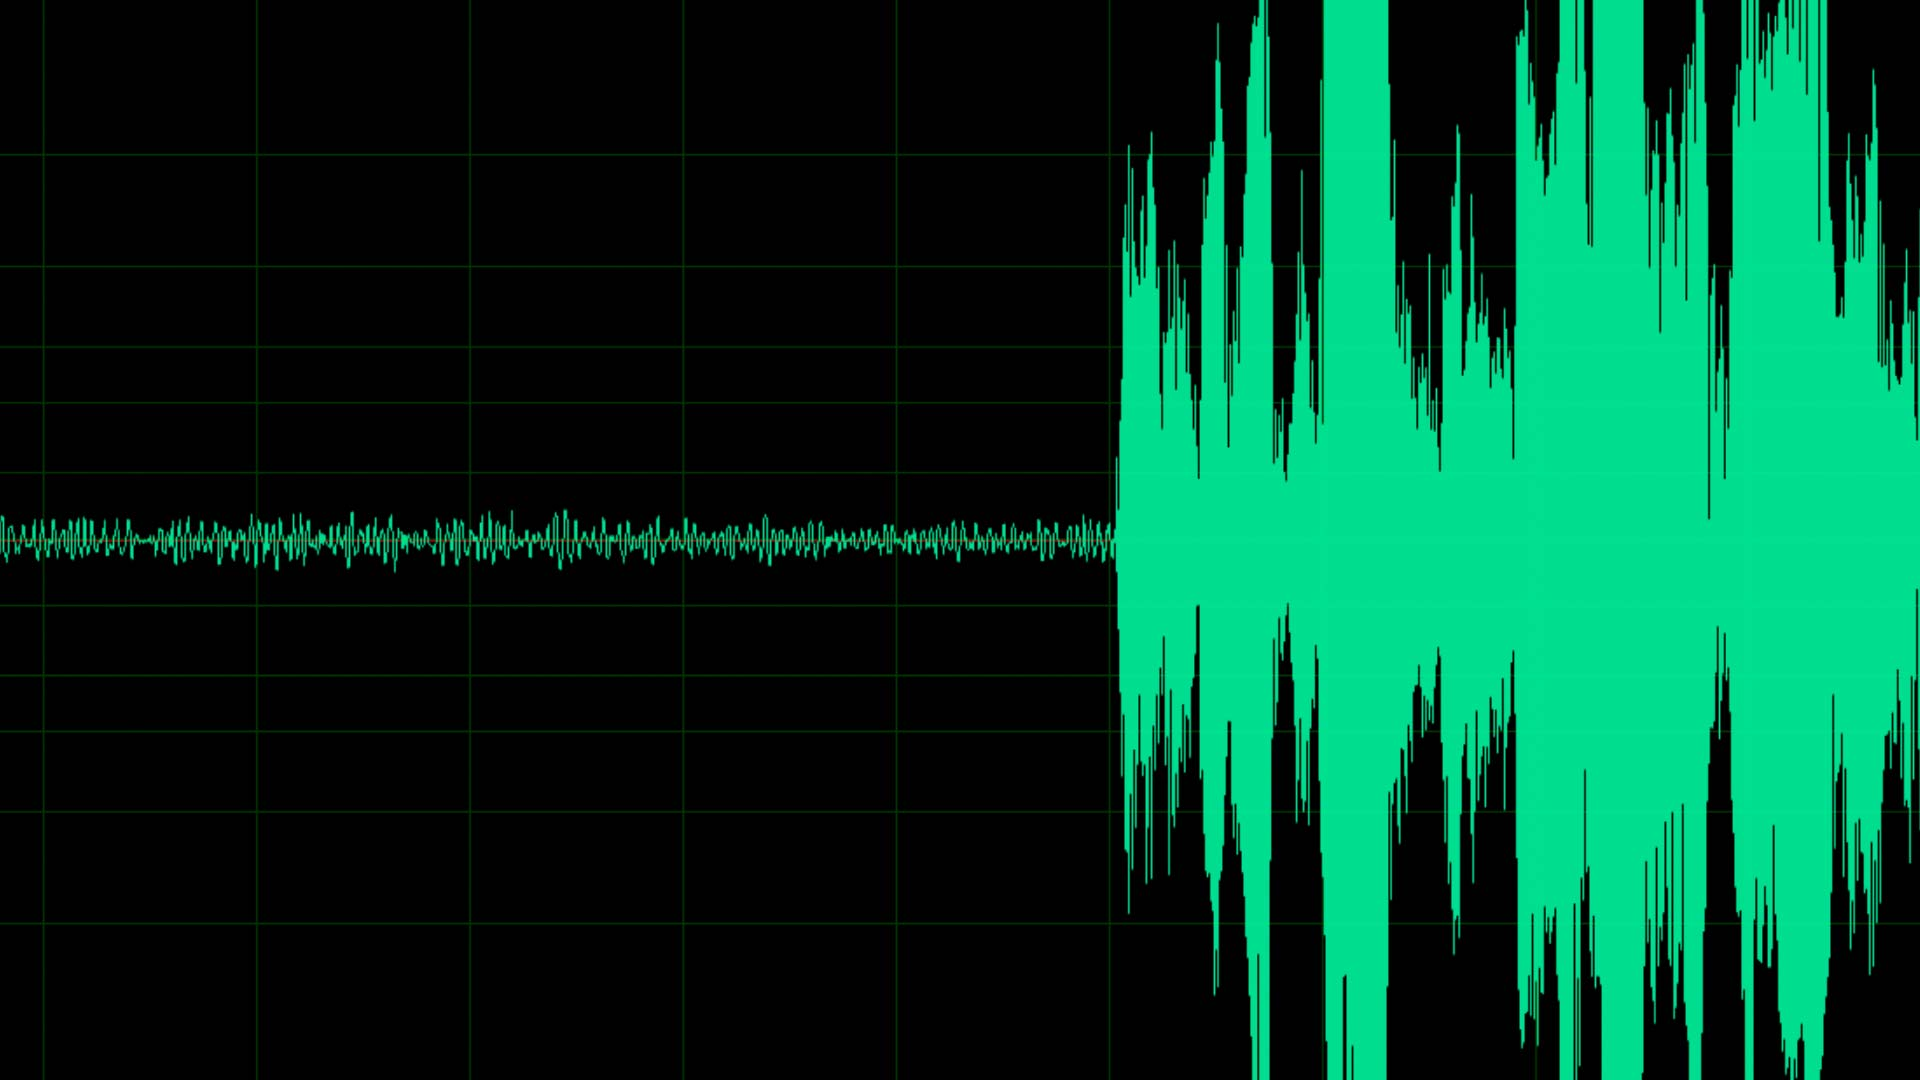 Sound Wave from Silence to Volume